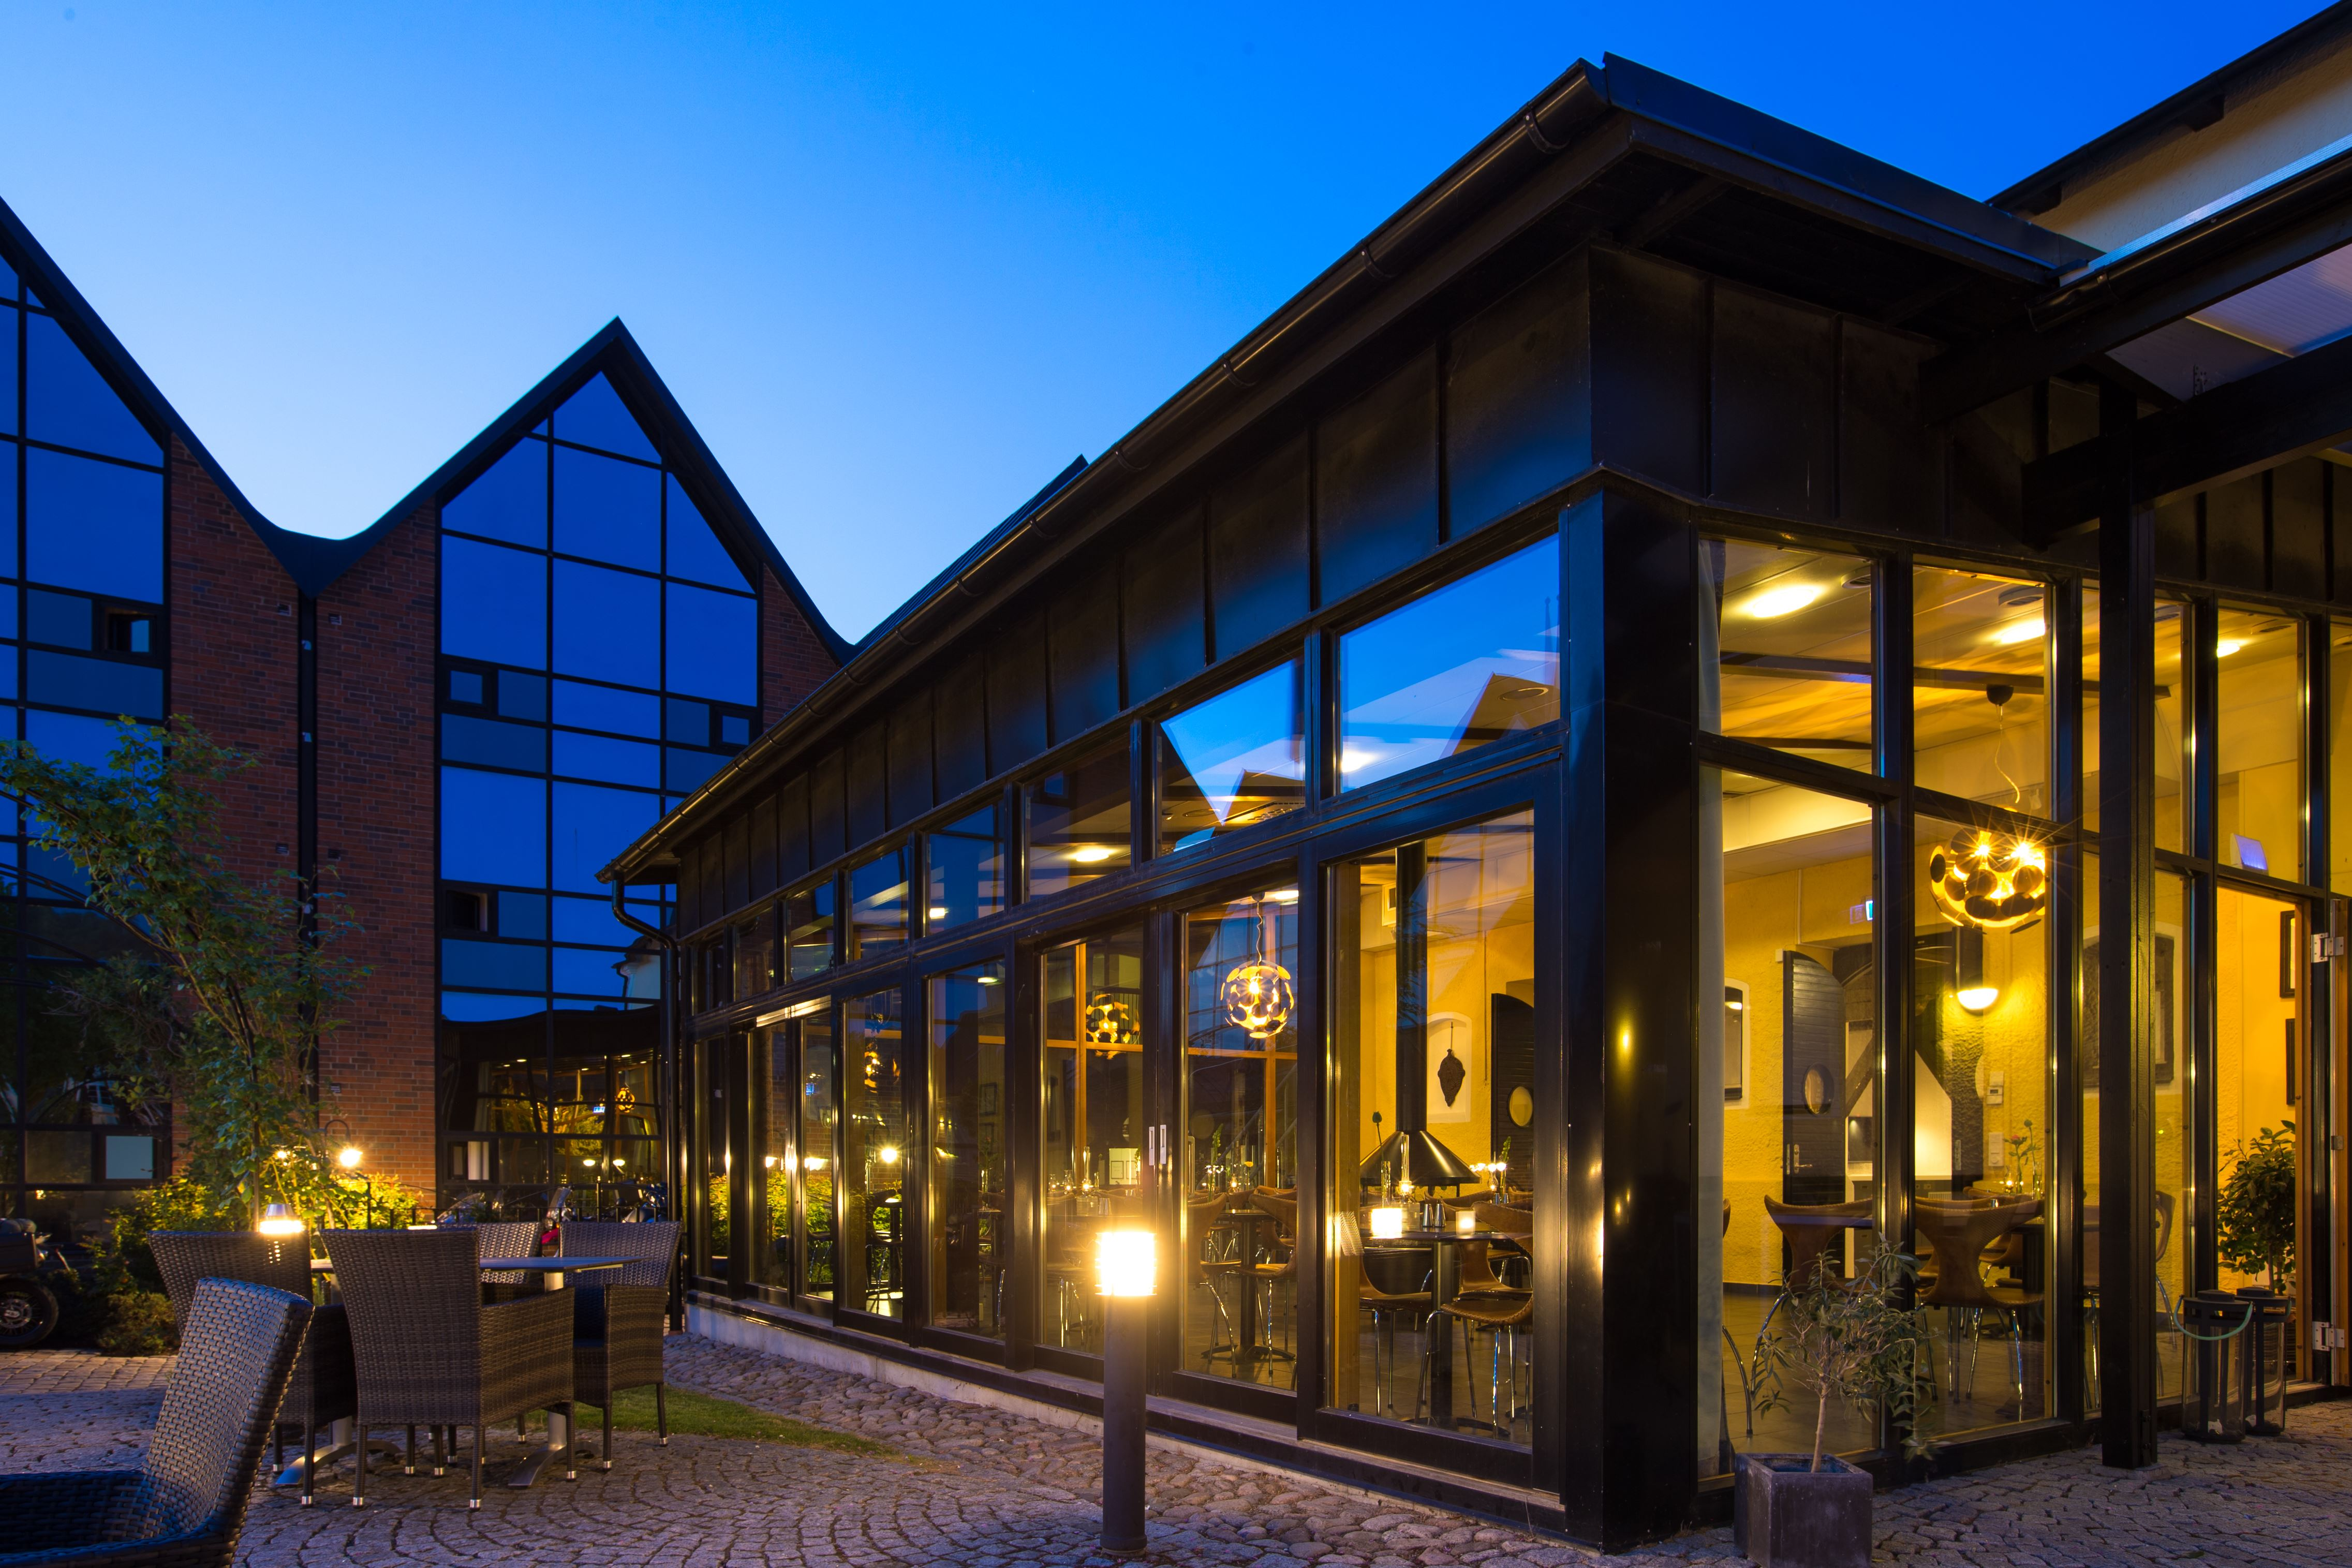 Clarion Collection Hotel carlskrona